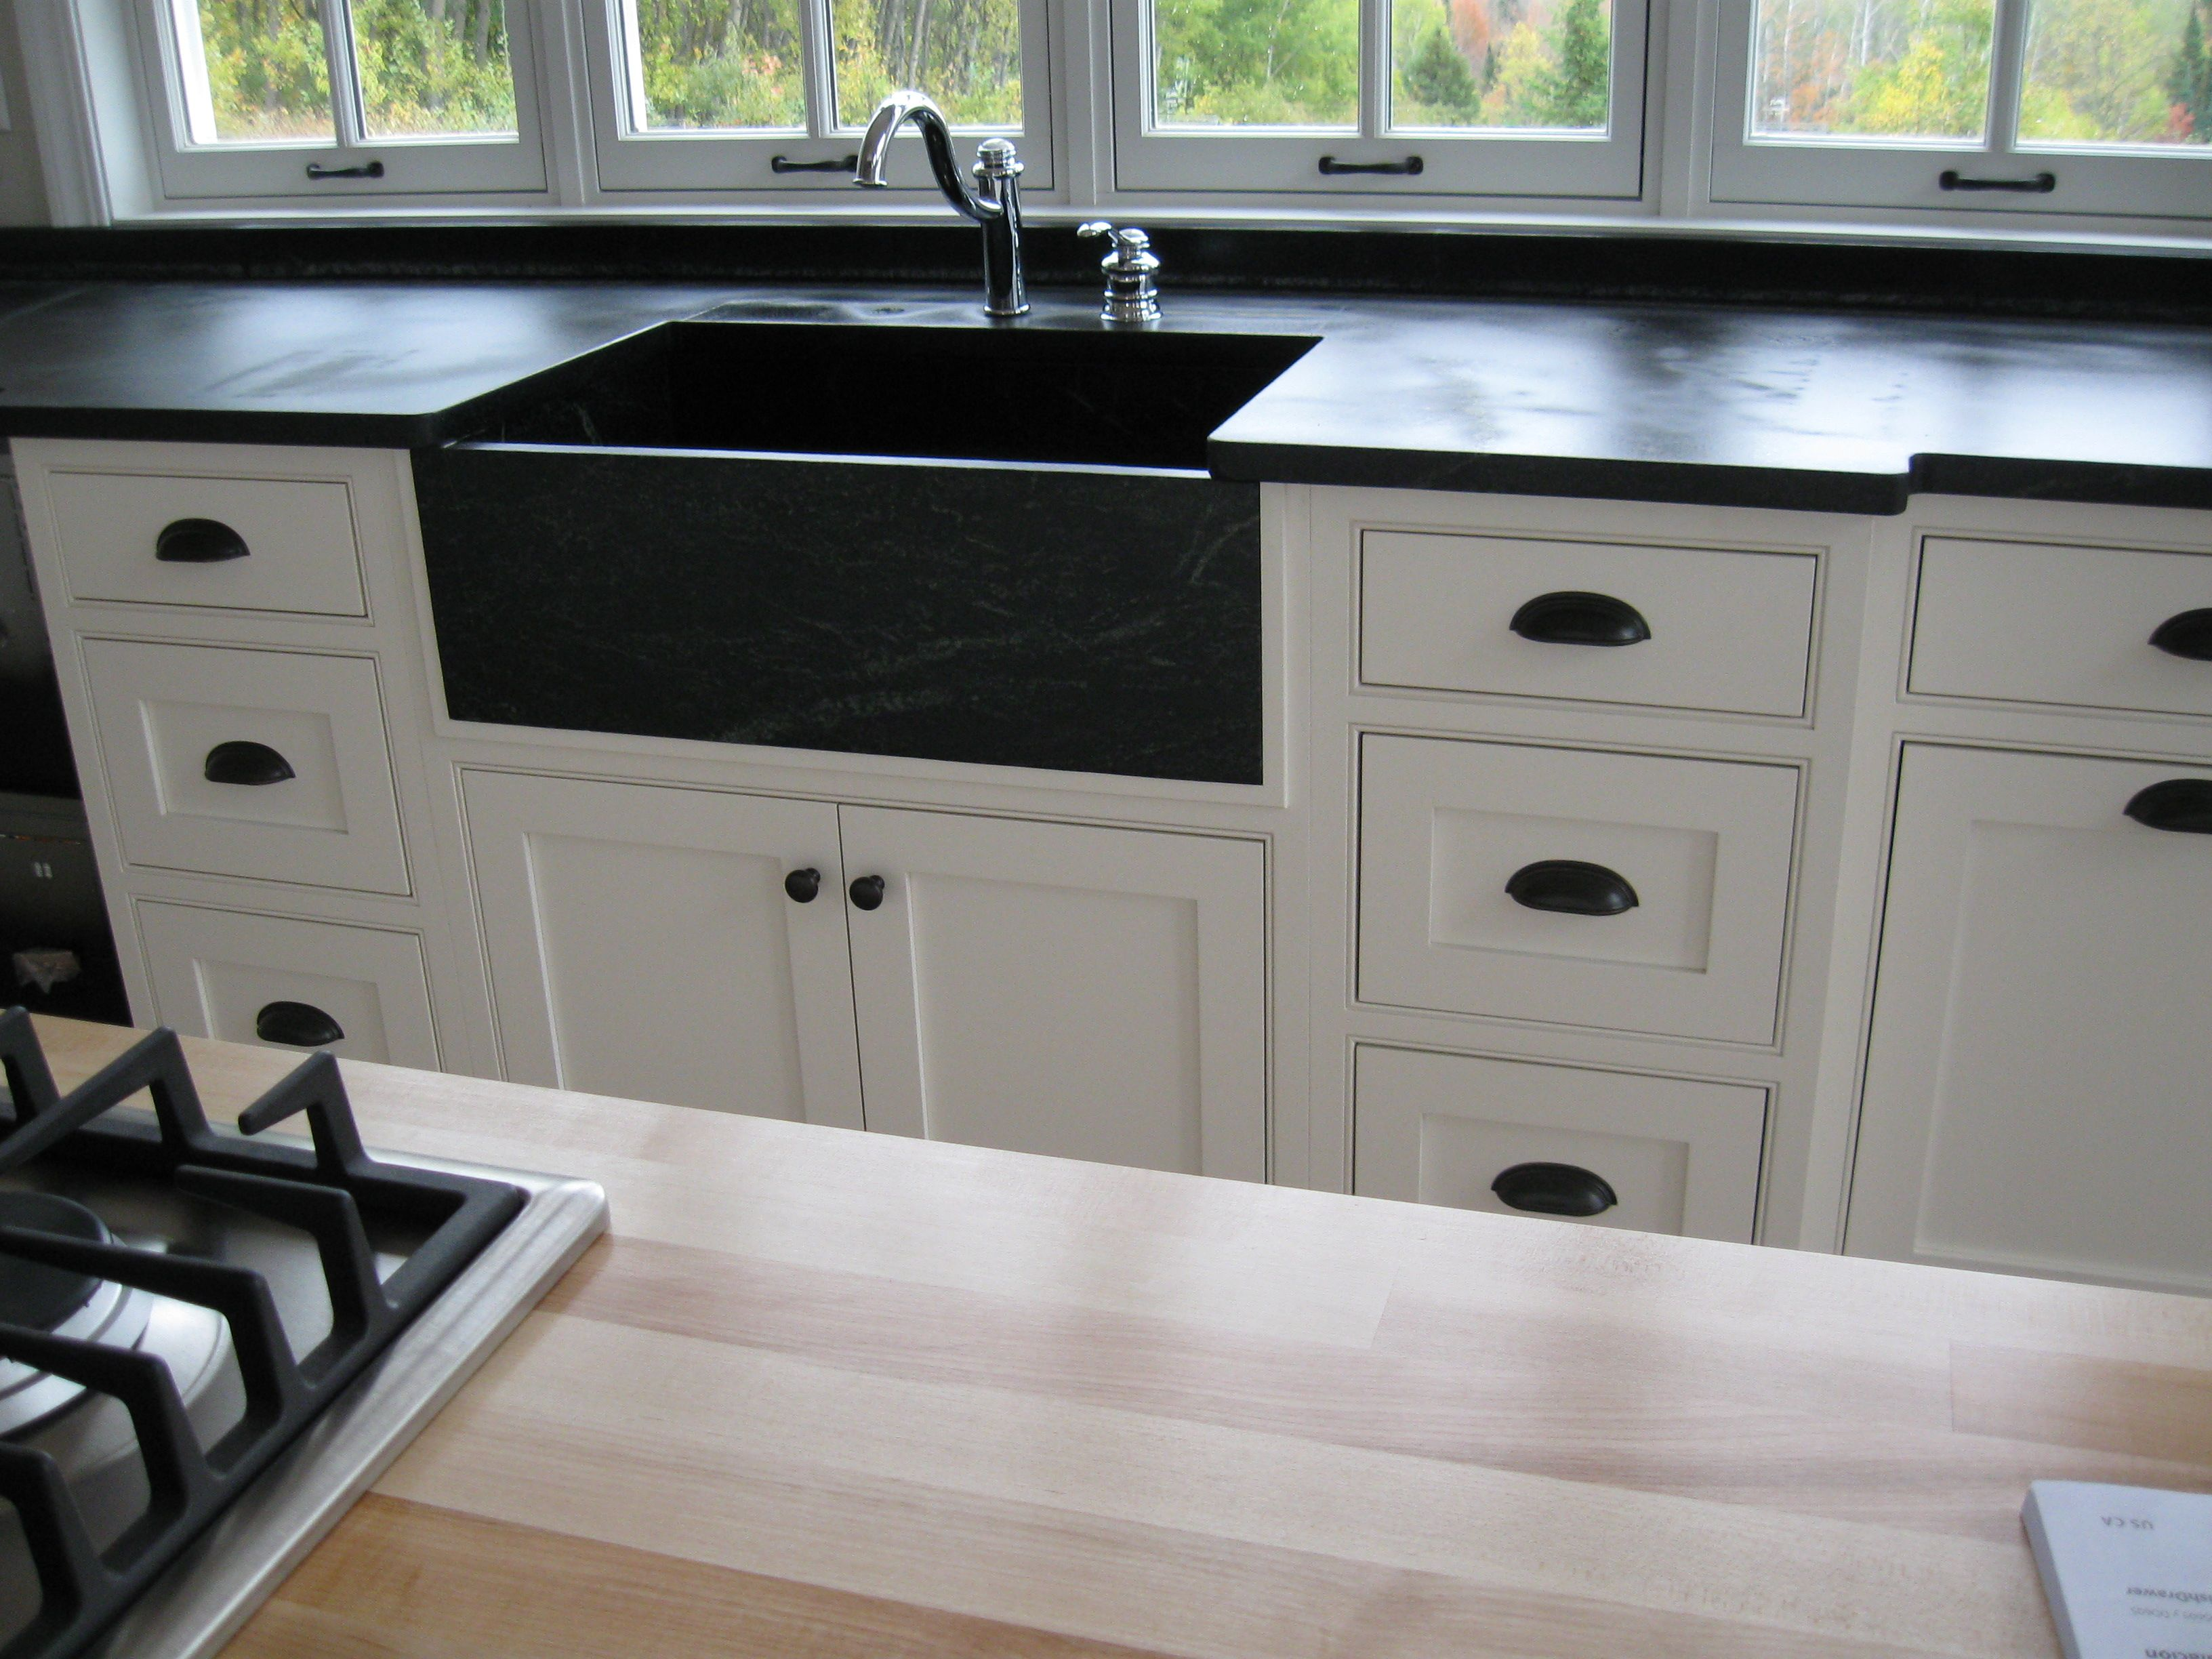 Soapstone sink and countertop? Sears Kit Home Redo Ideas